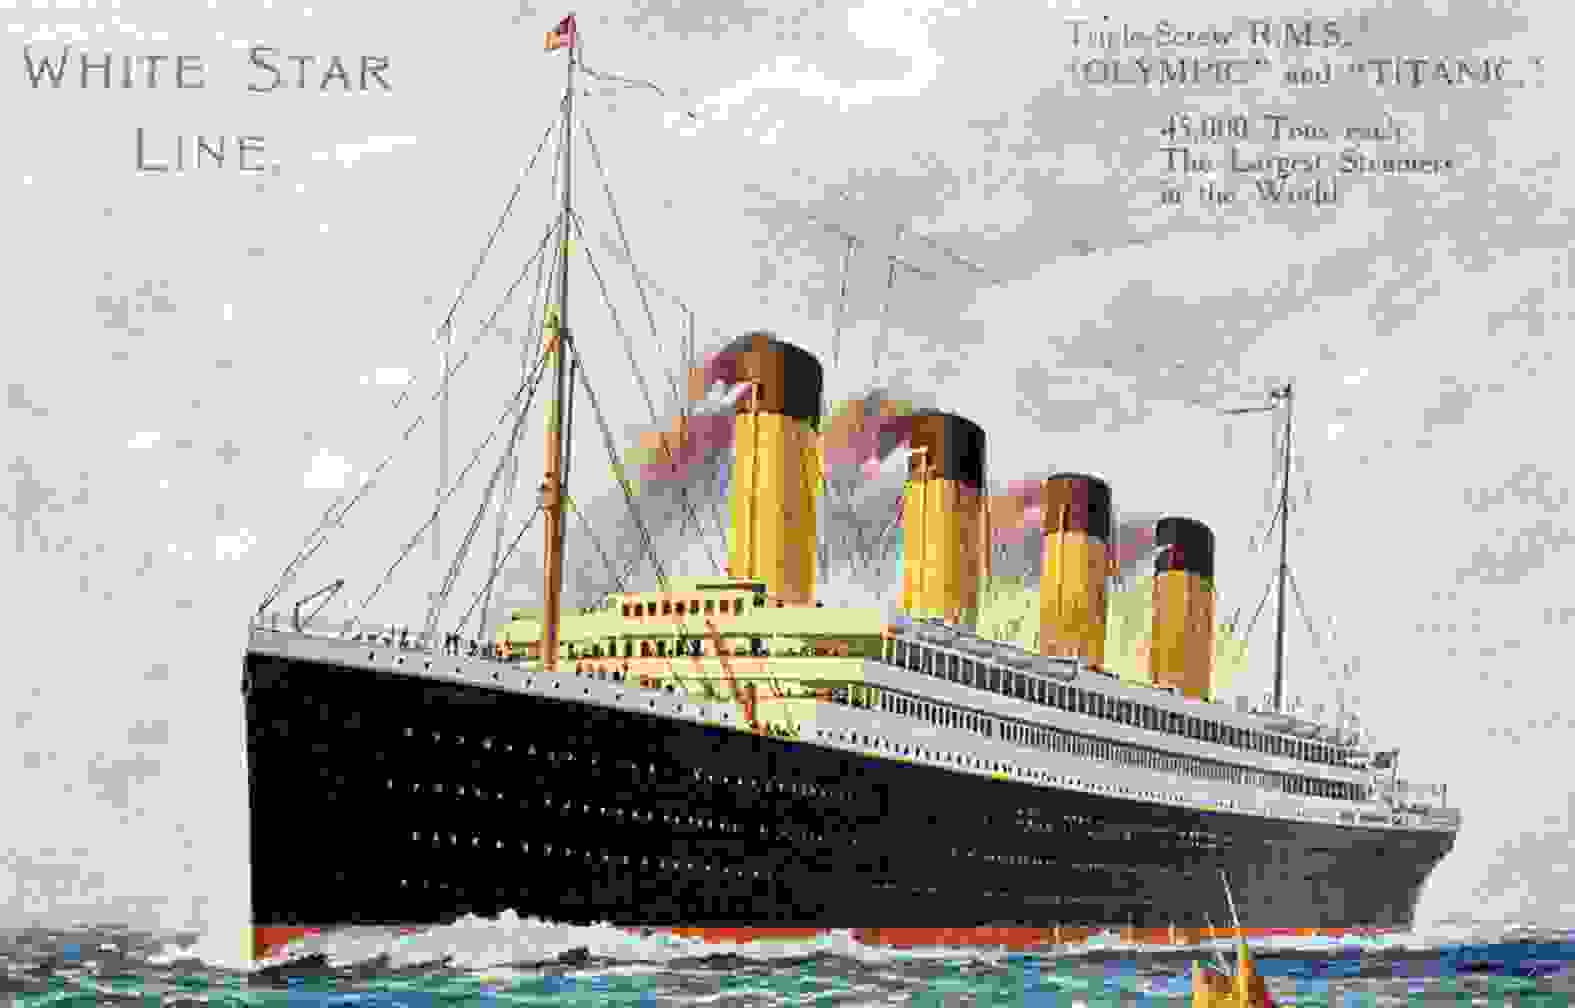 company_issued_white_star_line_postcard_1911